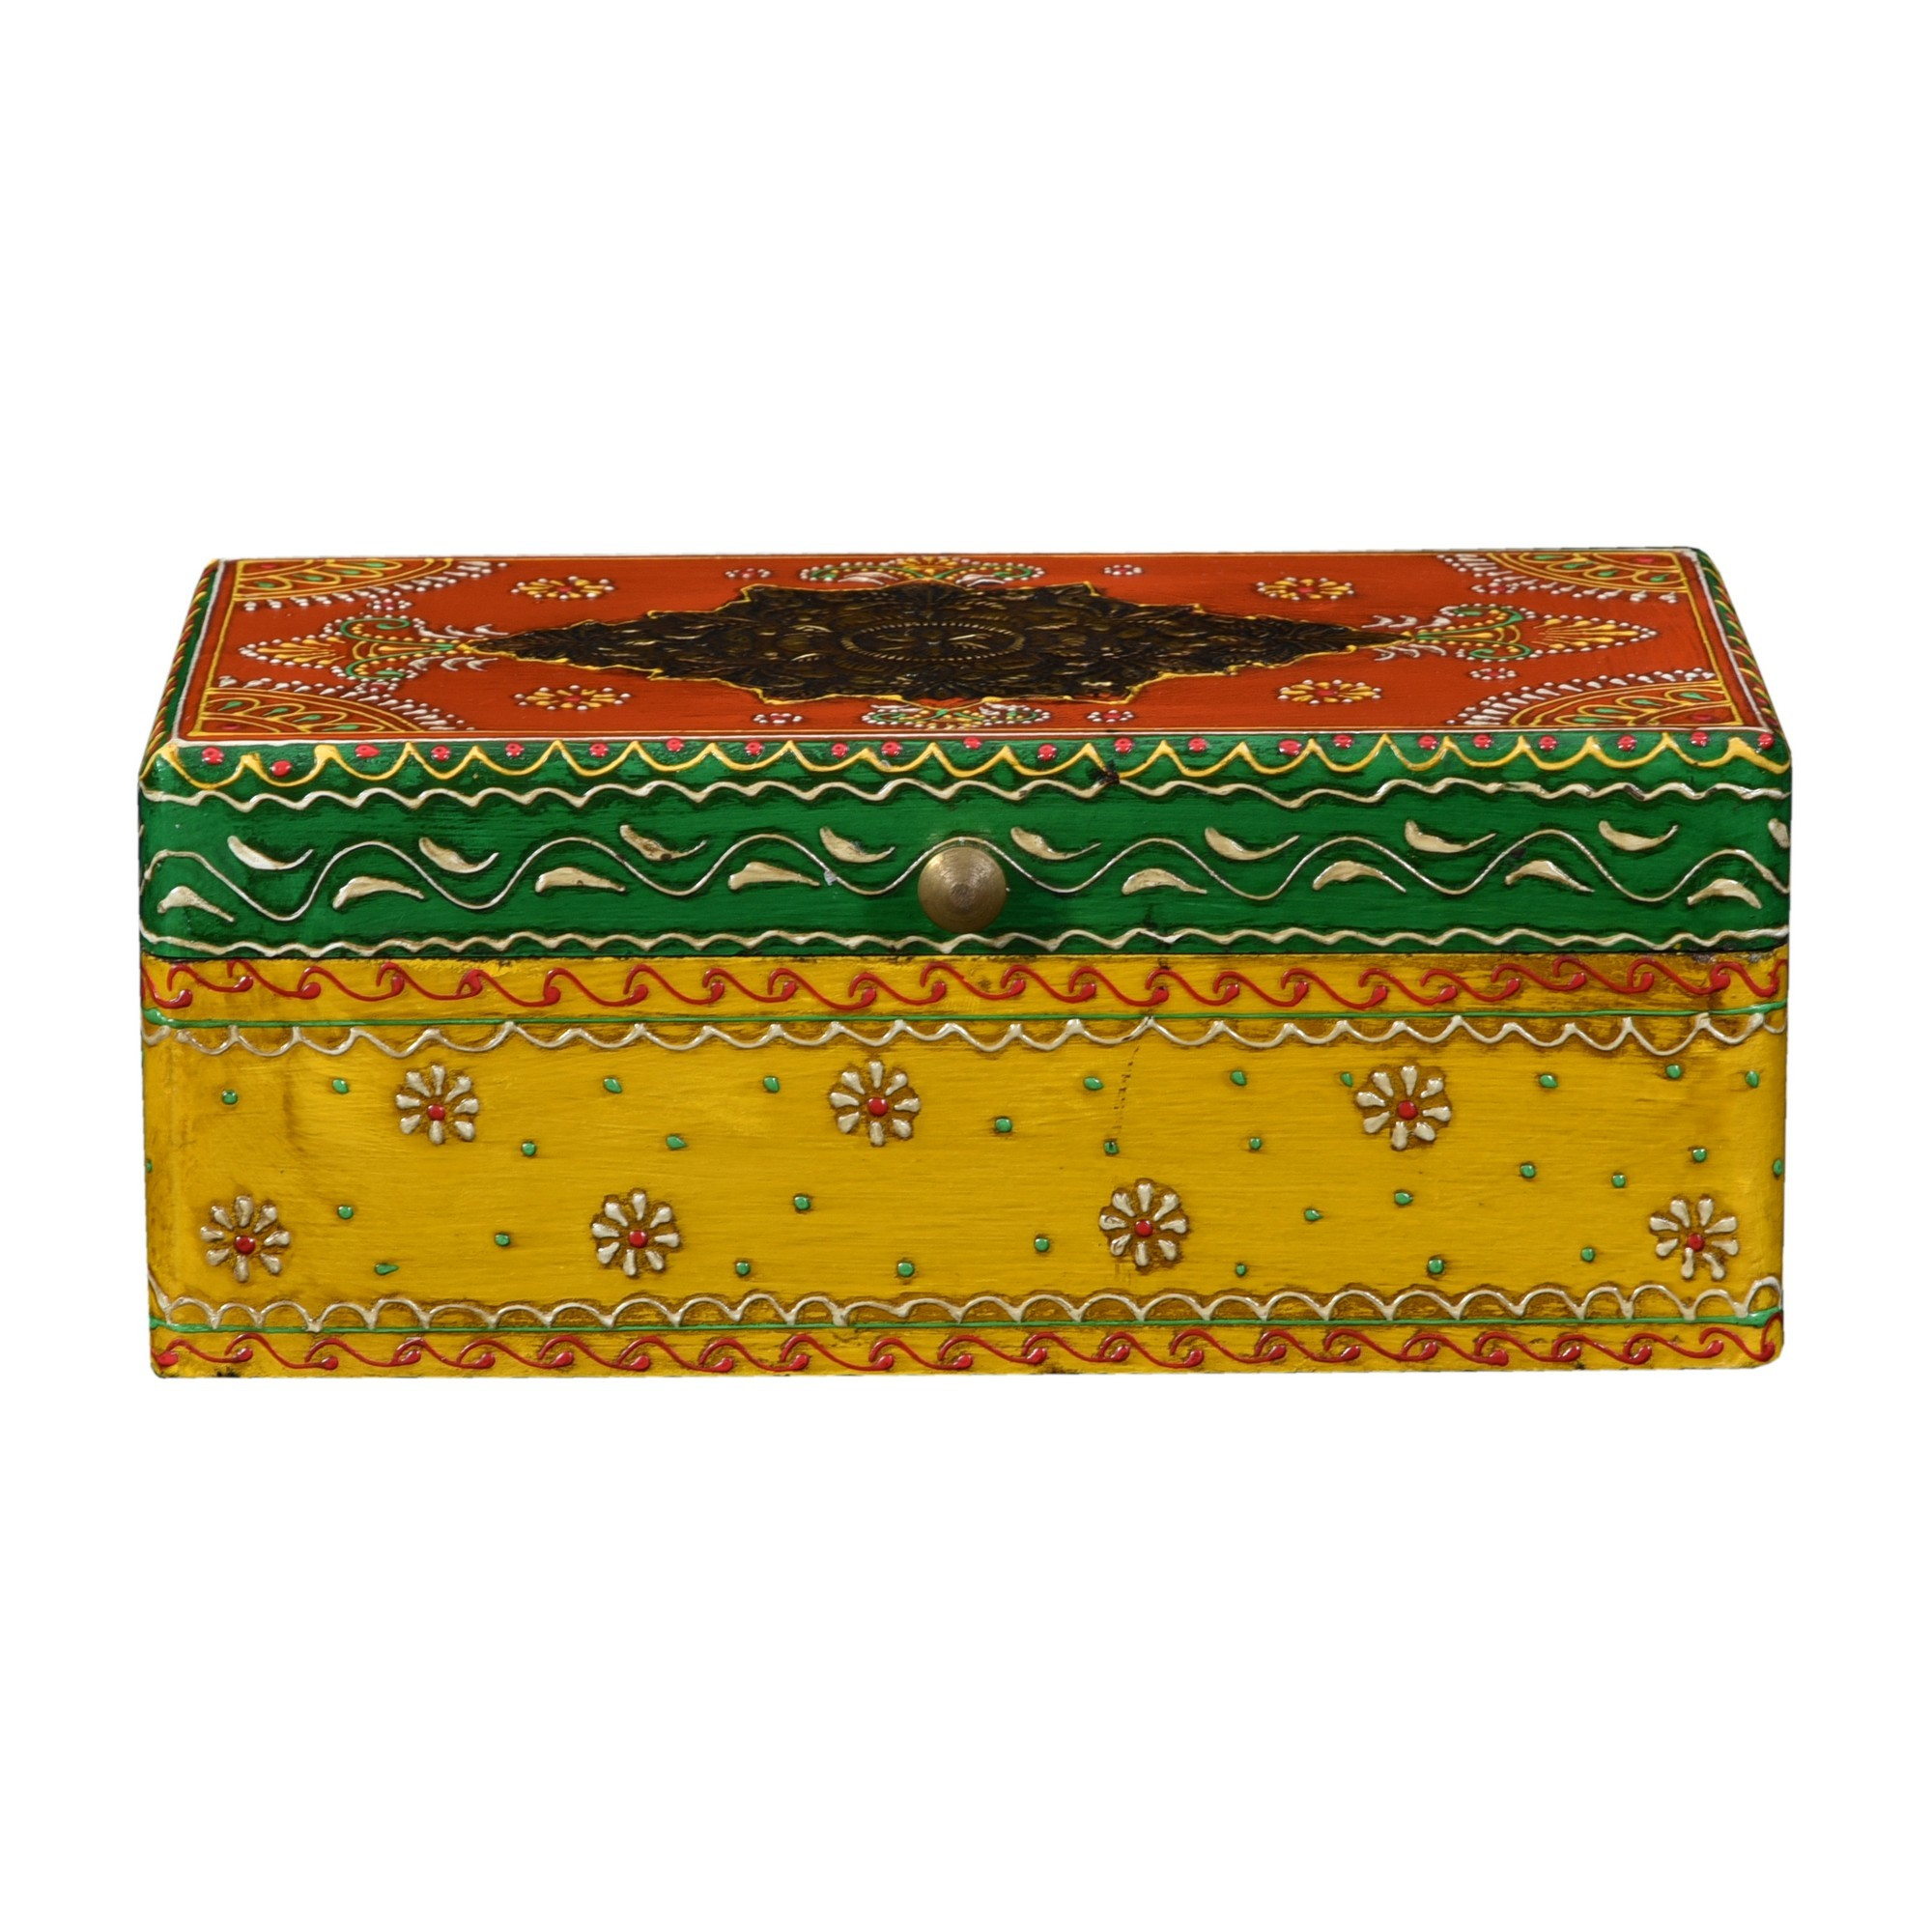 Trady Painted Wooden Storage Box